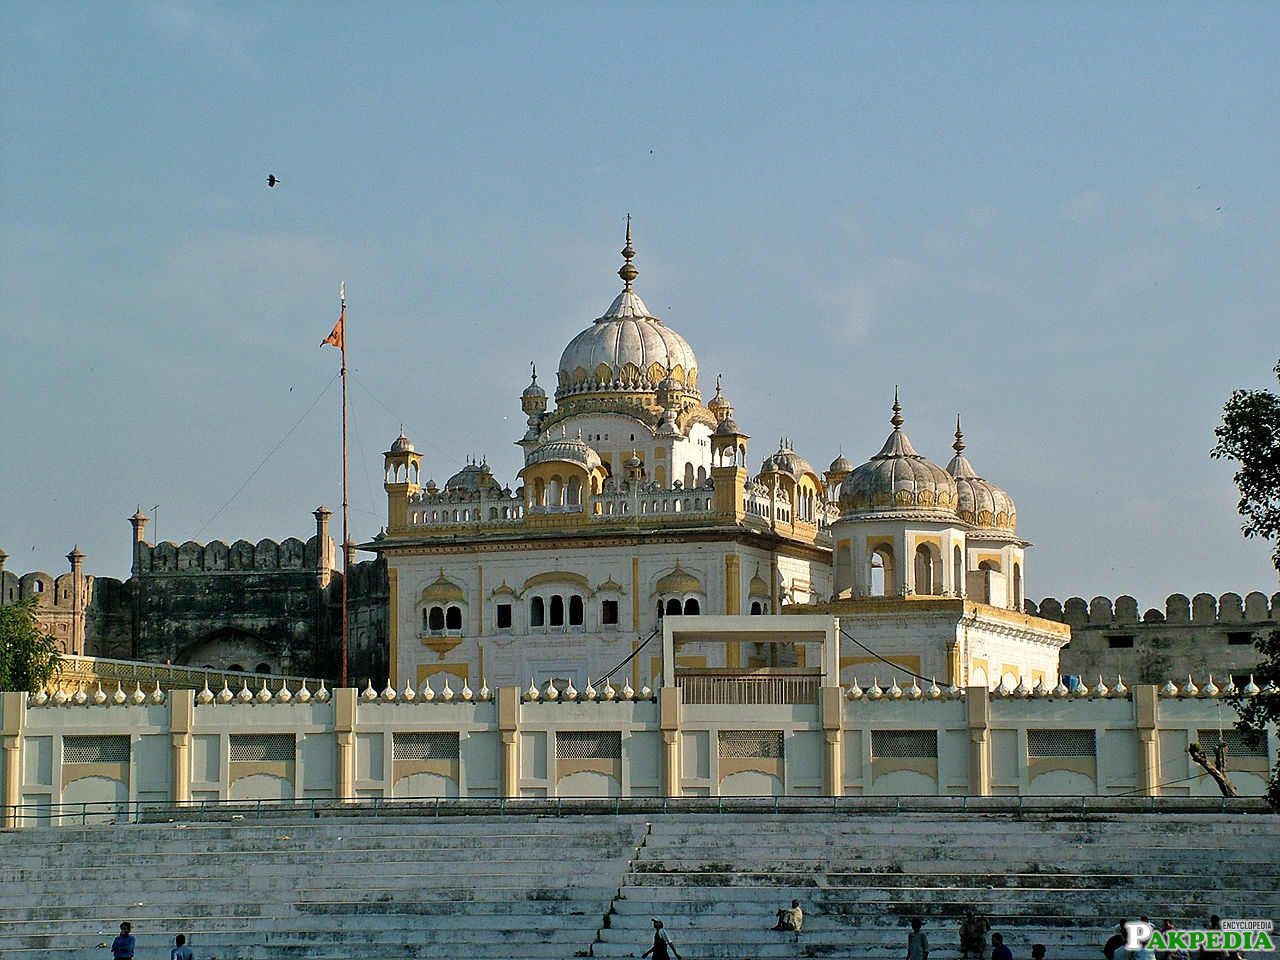 Samadhi Of Ranjit Singhis a historical place